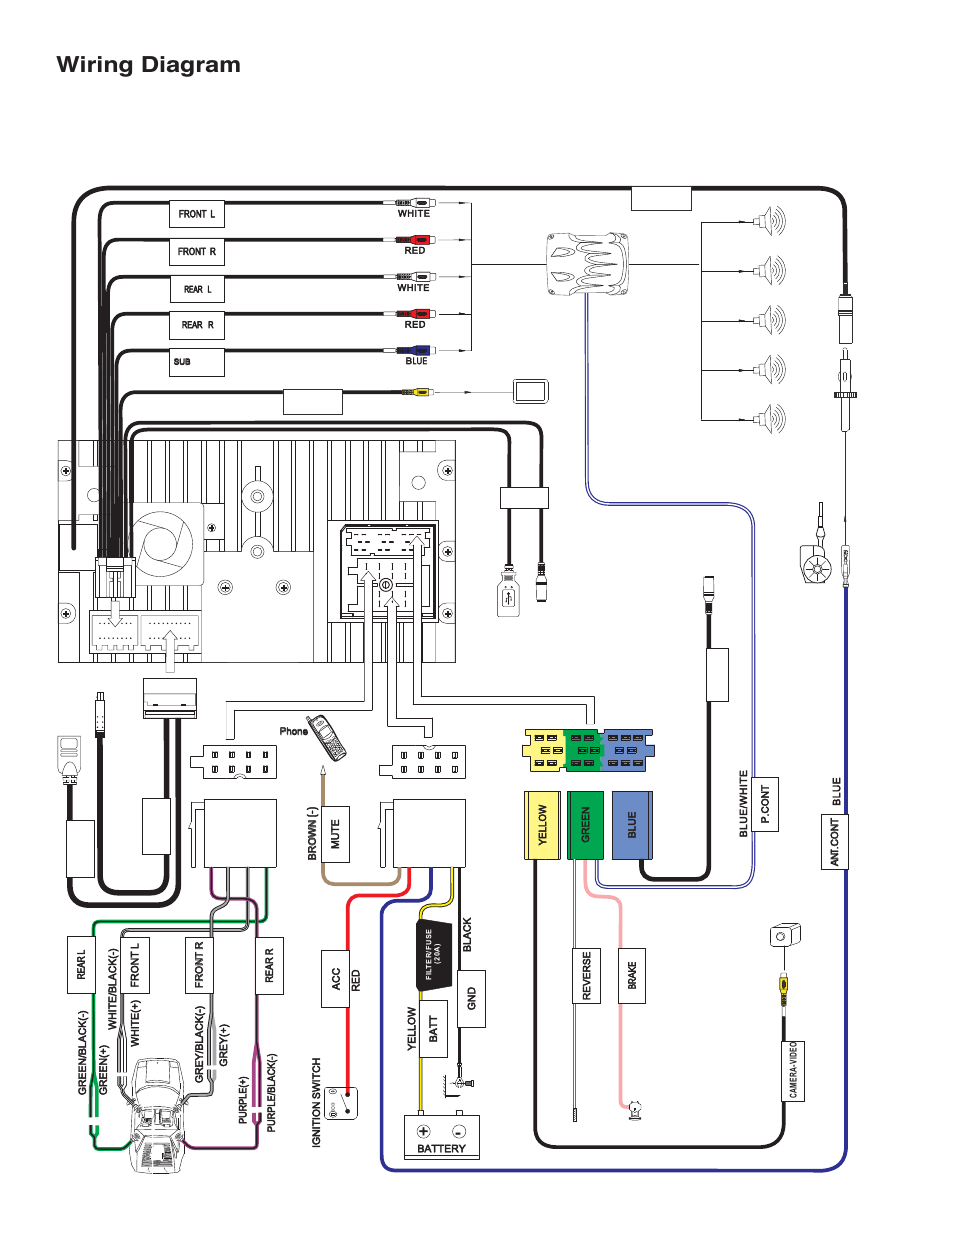 jensen vm9224 page4?resize\\\=665%2C861 viper 5002 alarm wiring diagram viper 5901 wiring diagram, viper viper 500 esp wiring diagram at eliteediting.co